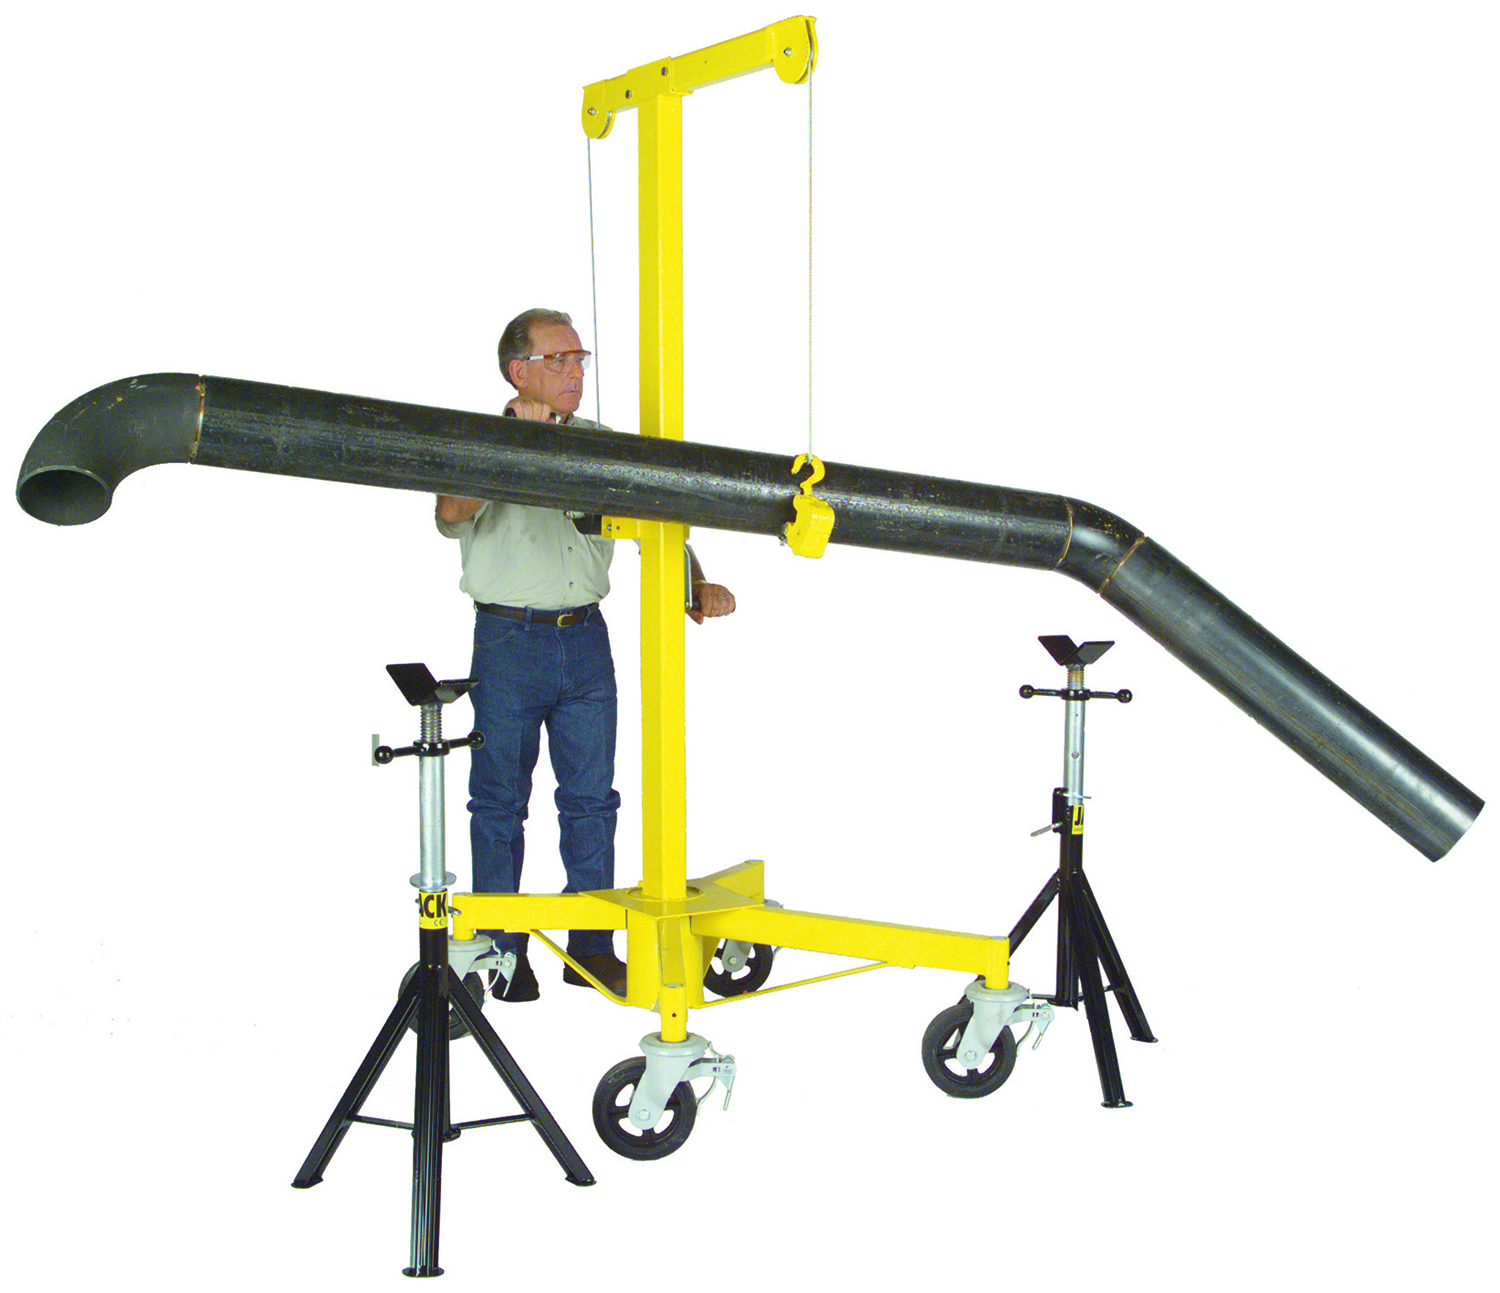 Mechanical Amp Plumbing Pipe Dollies Amp Lifts Fabmate Hoist